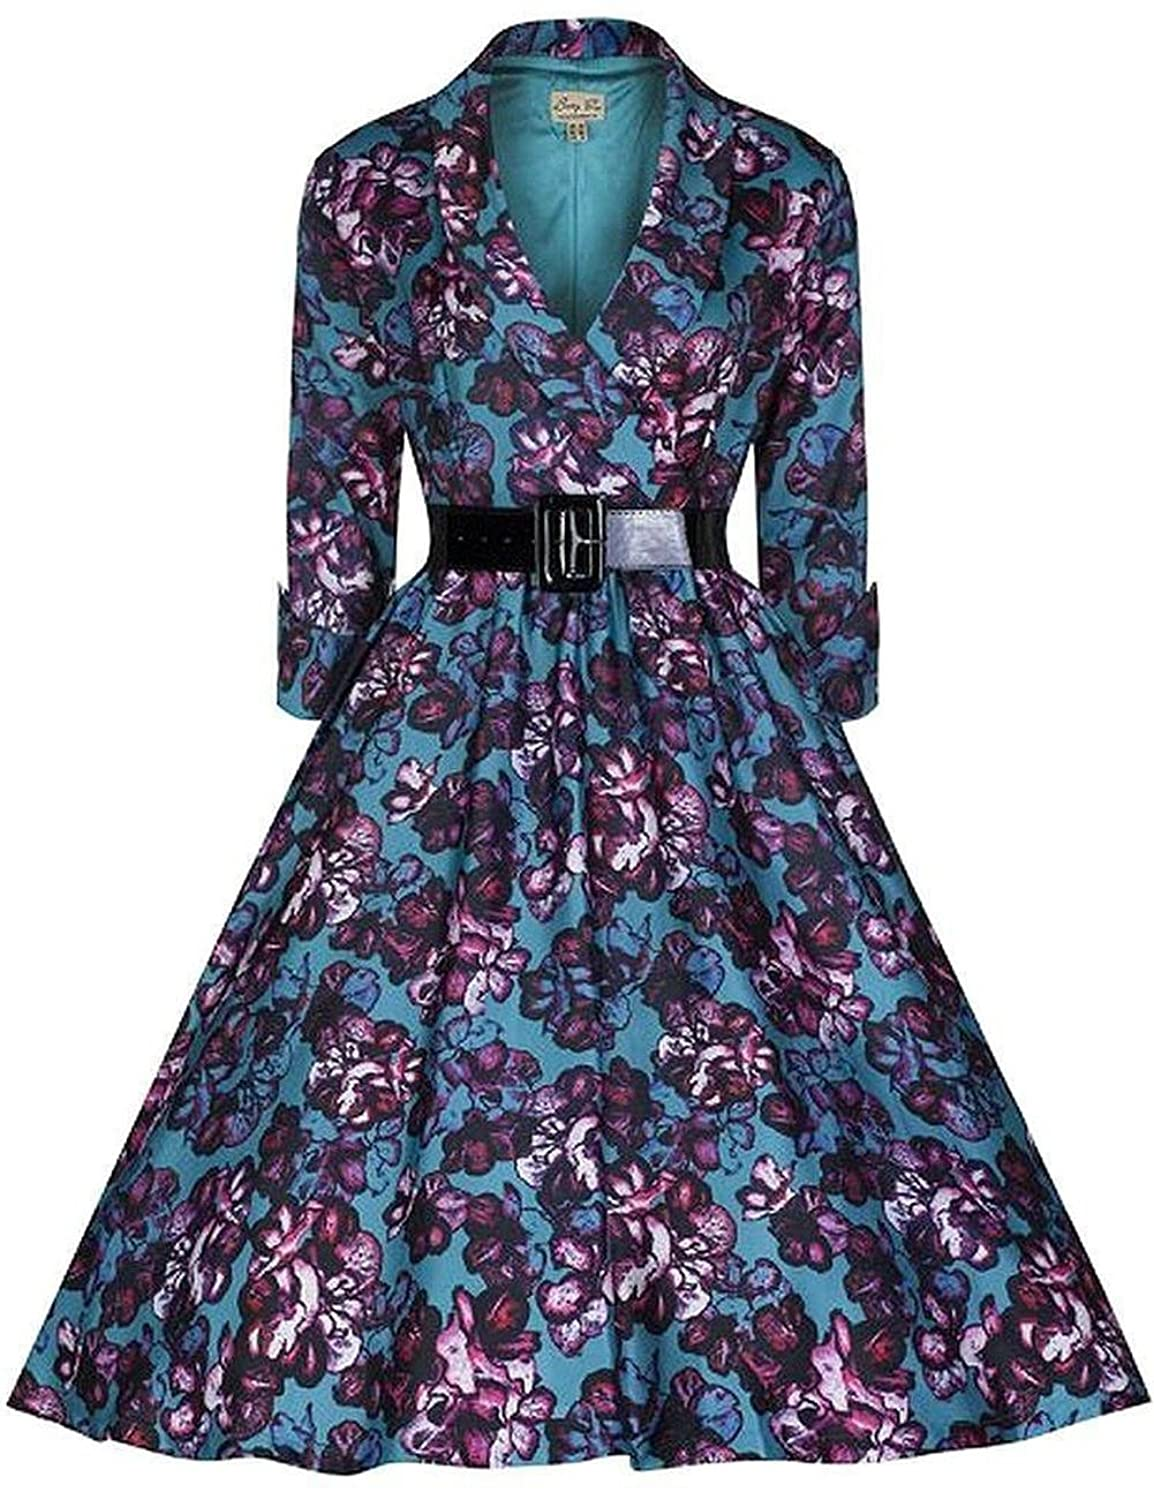 Babyonline Womens Vintage 3/4 Sleeve Belted Retro 1950s Casual Party Swing Dress